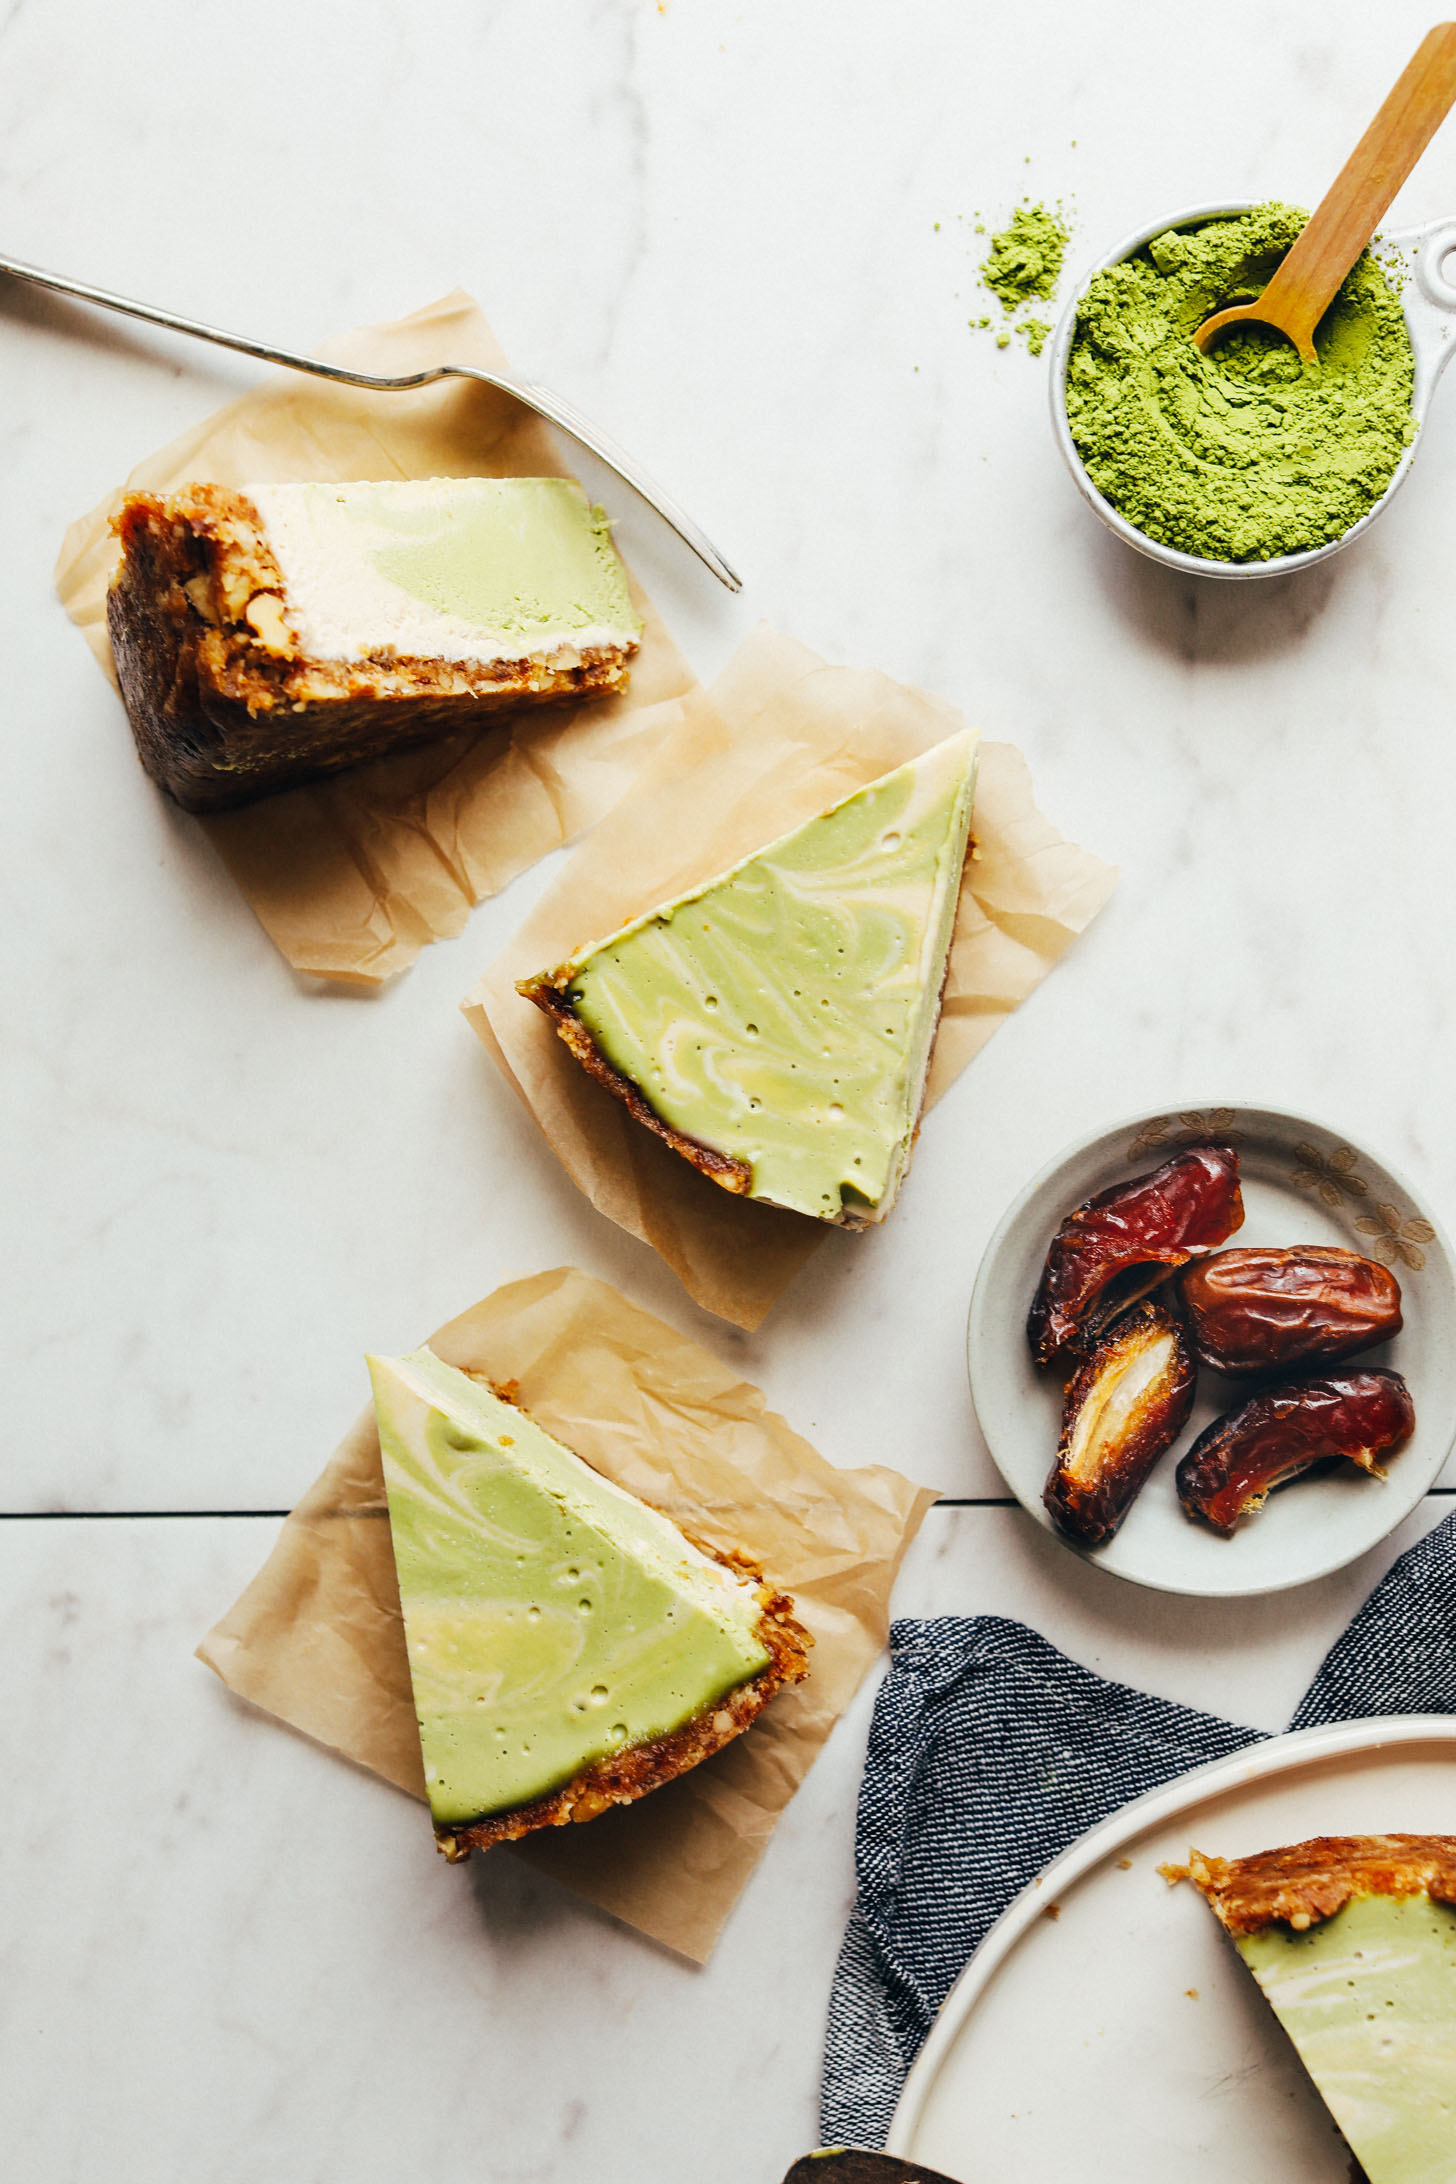 Slices of gluten-free vegan Matcha Swirl Cheesecake on squares of parchment paper